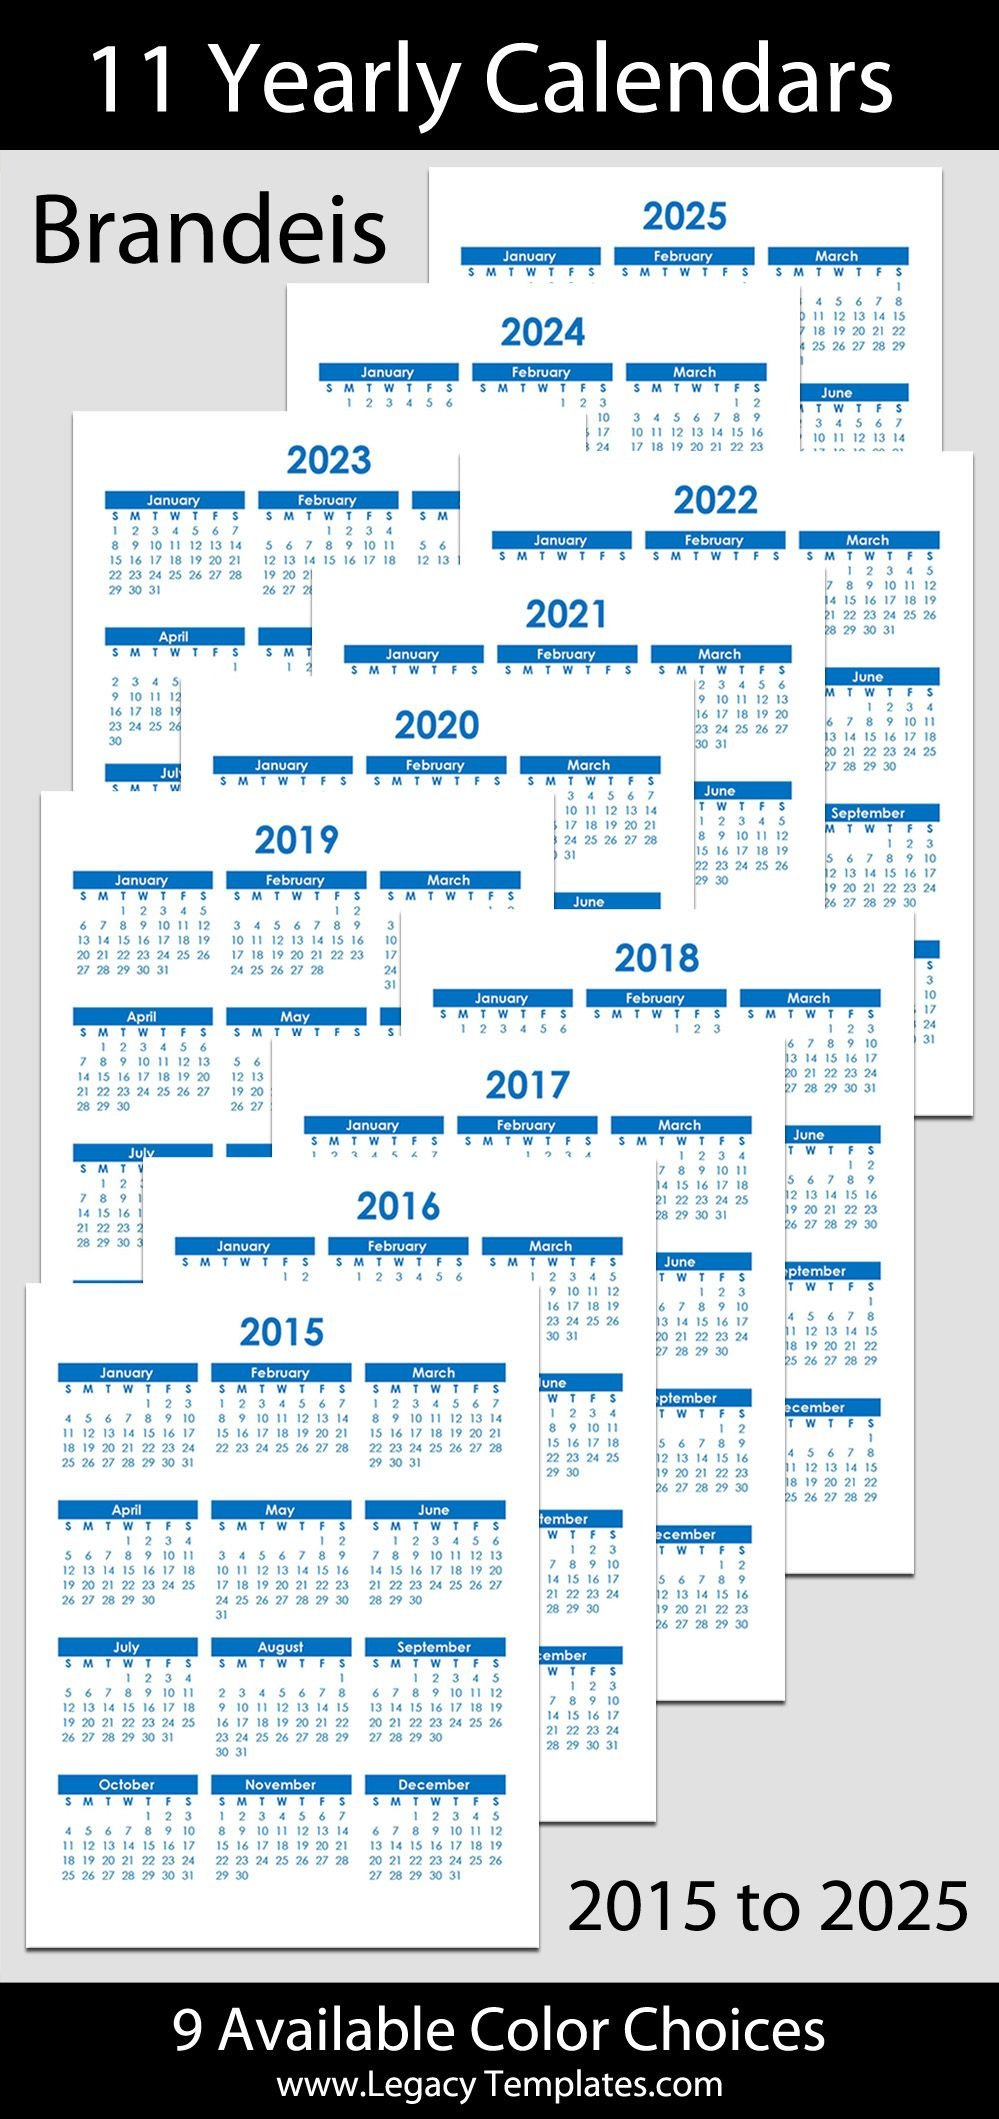 2015 To 2025 Printable Yearly Calendars – Letter Size – 8 Printable Full Size 8 X 11 Calander